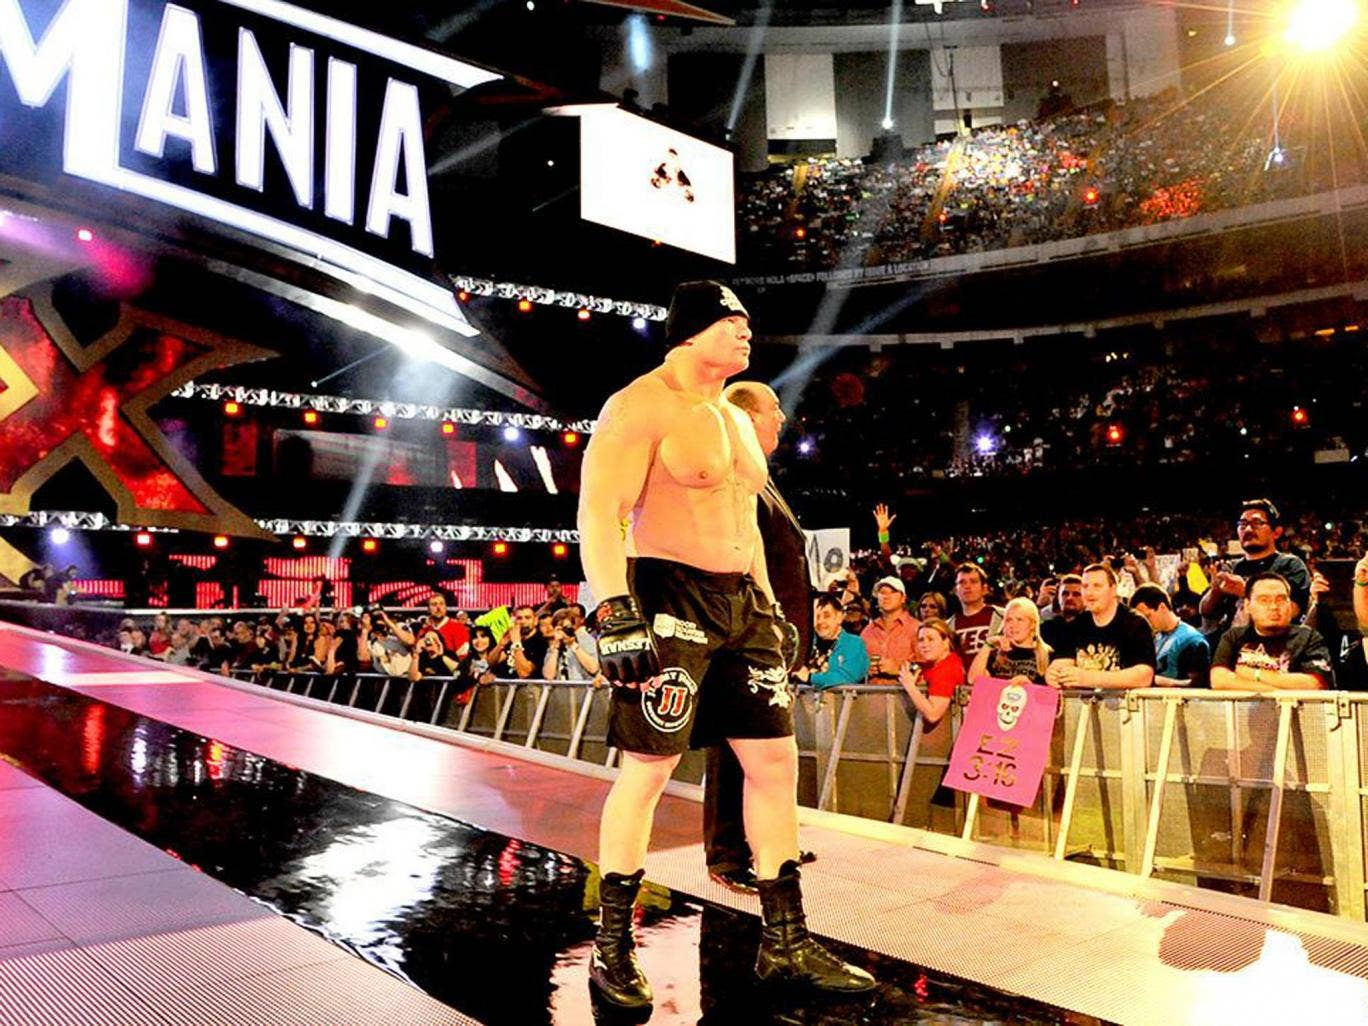 Brock Lesnar heads to the ring for his showdown with The Undertaker, accompanied by Paul Heyman